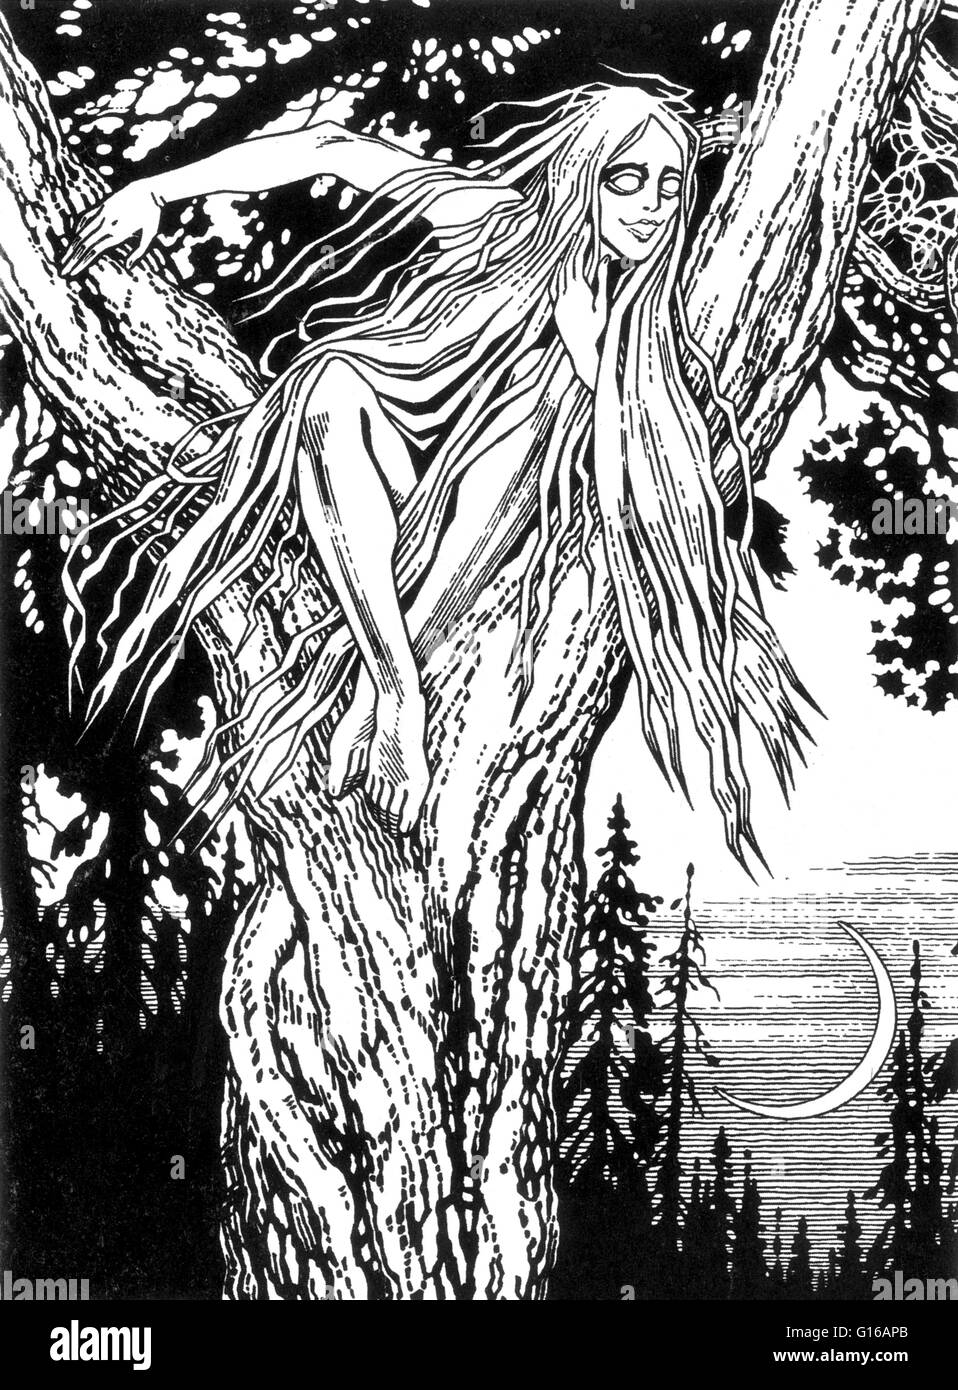 In Slavic mythology, a rusalka is a female ghost, water nymph, succubus, or mermaid-like demon that dwelt in a waterway. - Stock Image